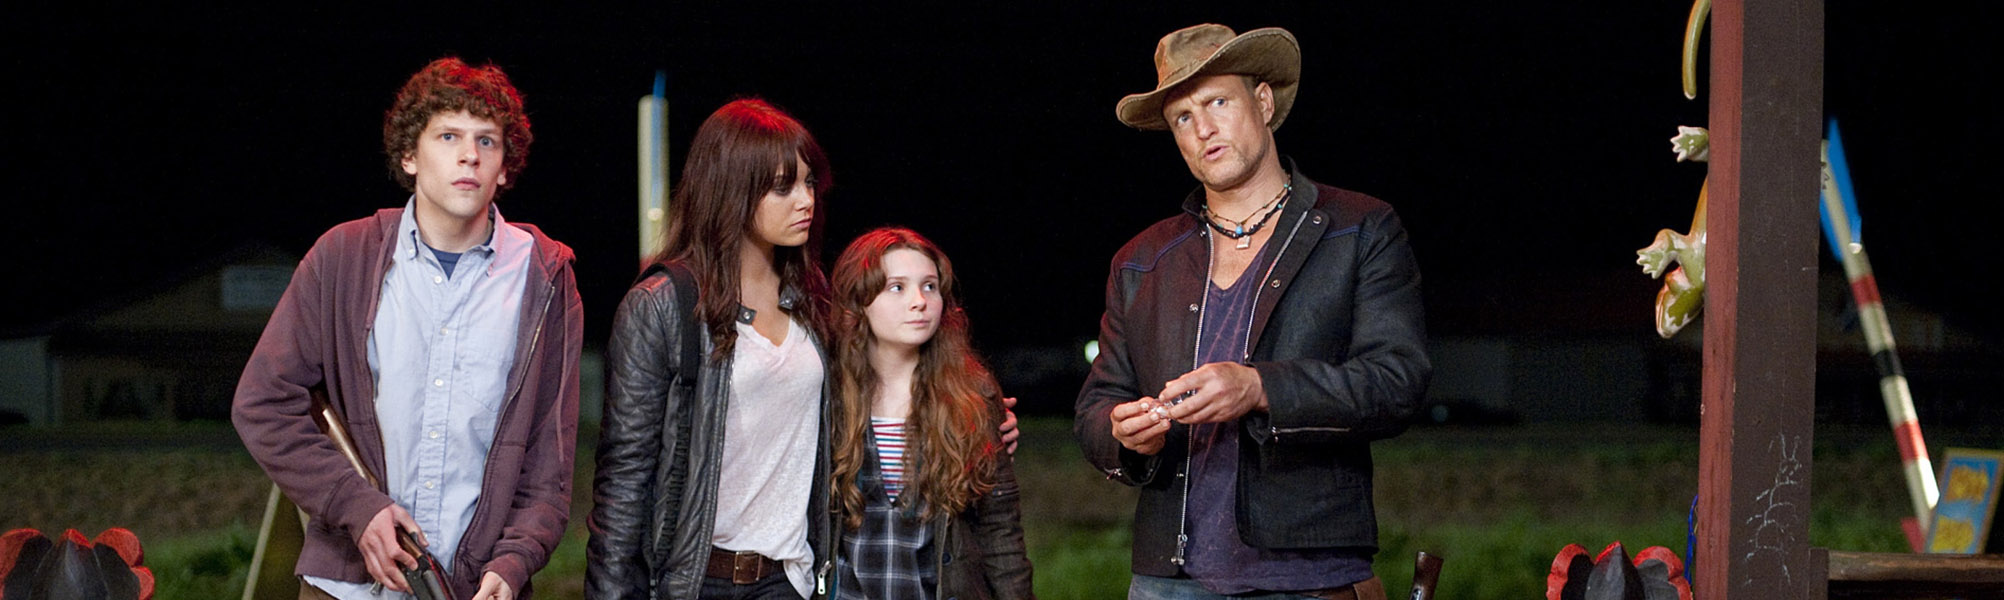 Benvenuti a Zombieland in 4K Ultra HD!